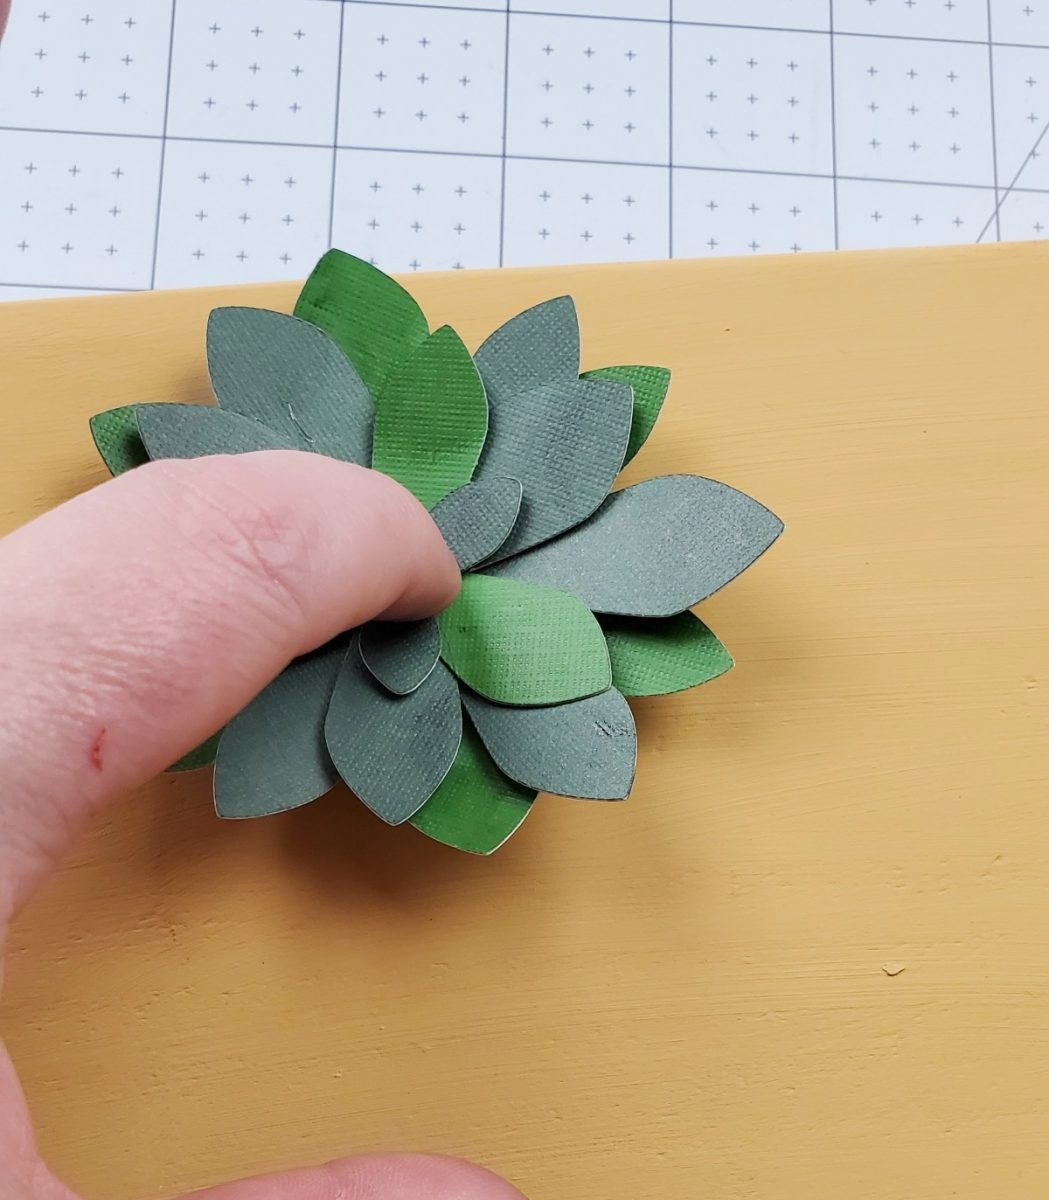 gluing paper flowers on wood